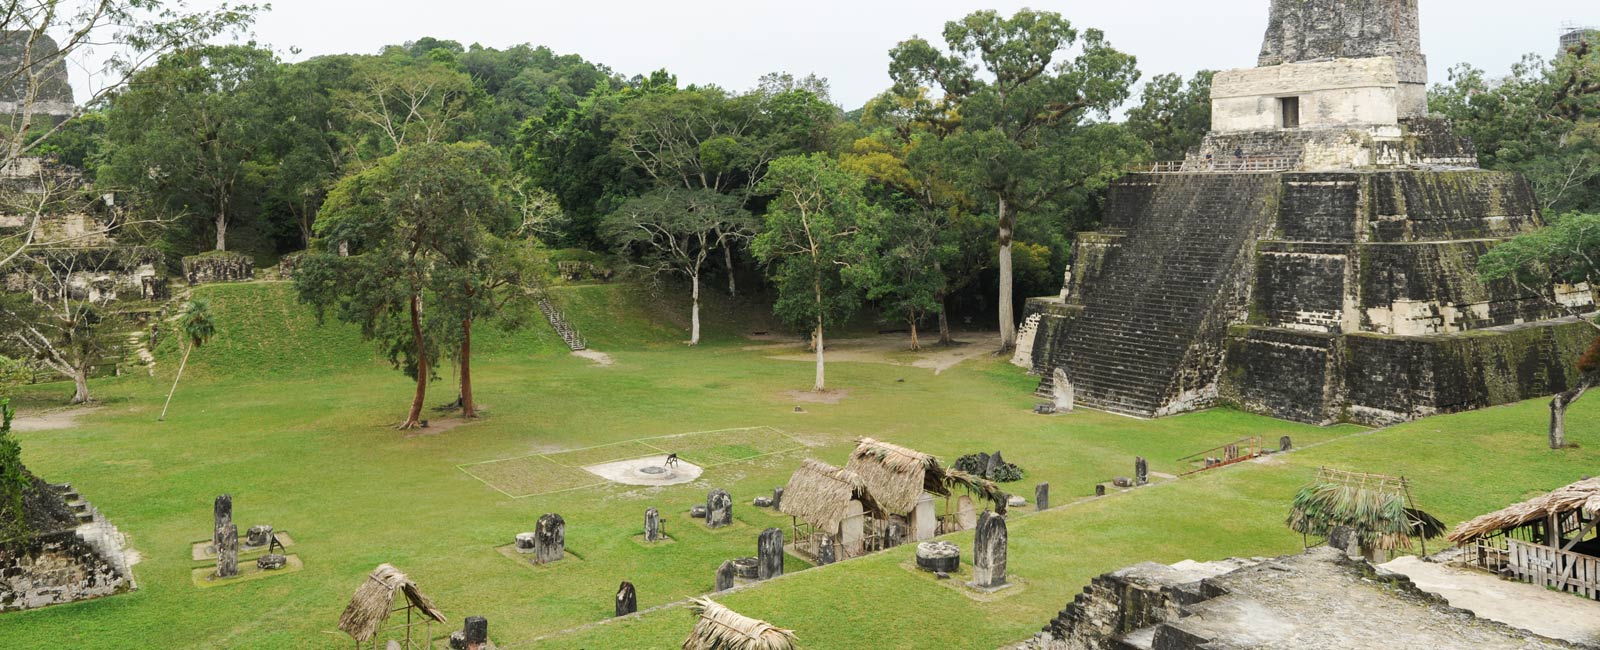 genocide in the mayan highlands Remembering victims of genocide in guatemala city  up in the highlands of  guatemala, a dark history haunts the mist-covered treelines.